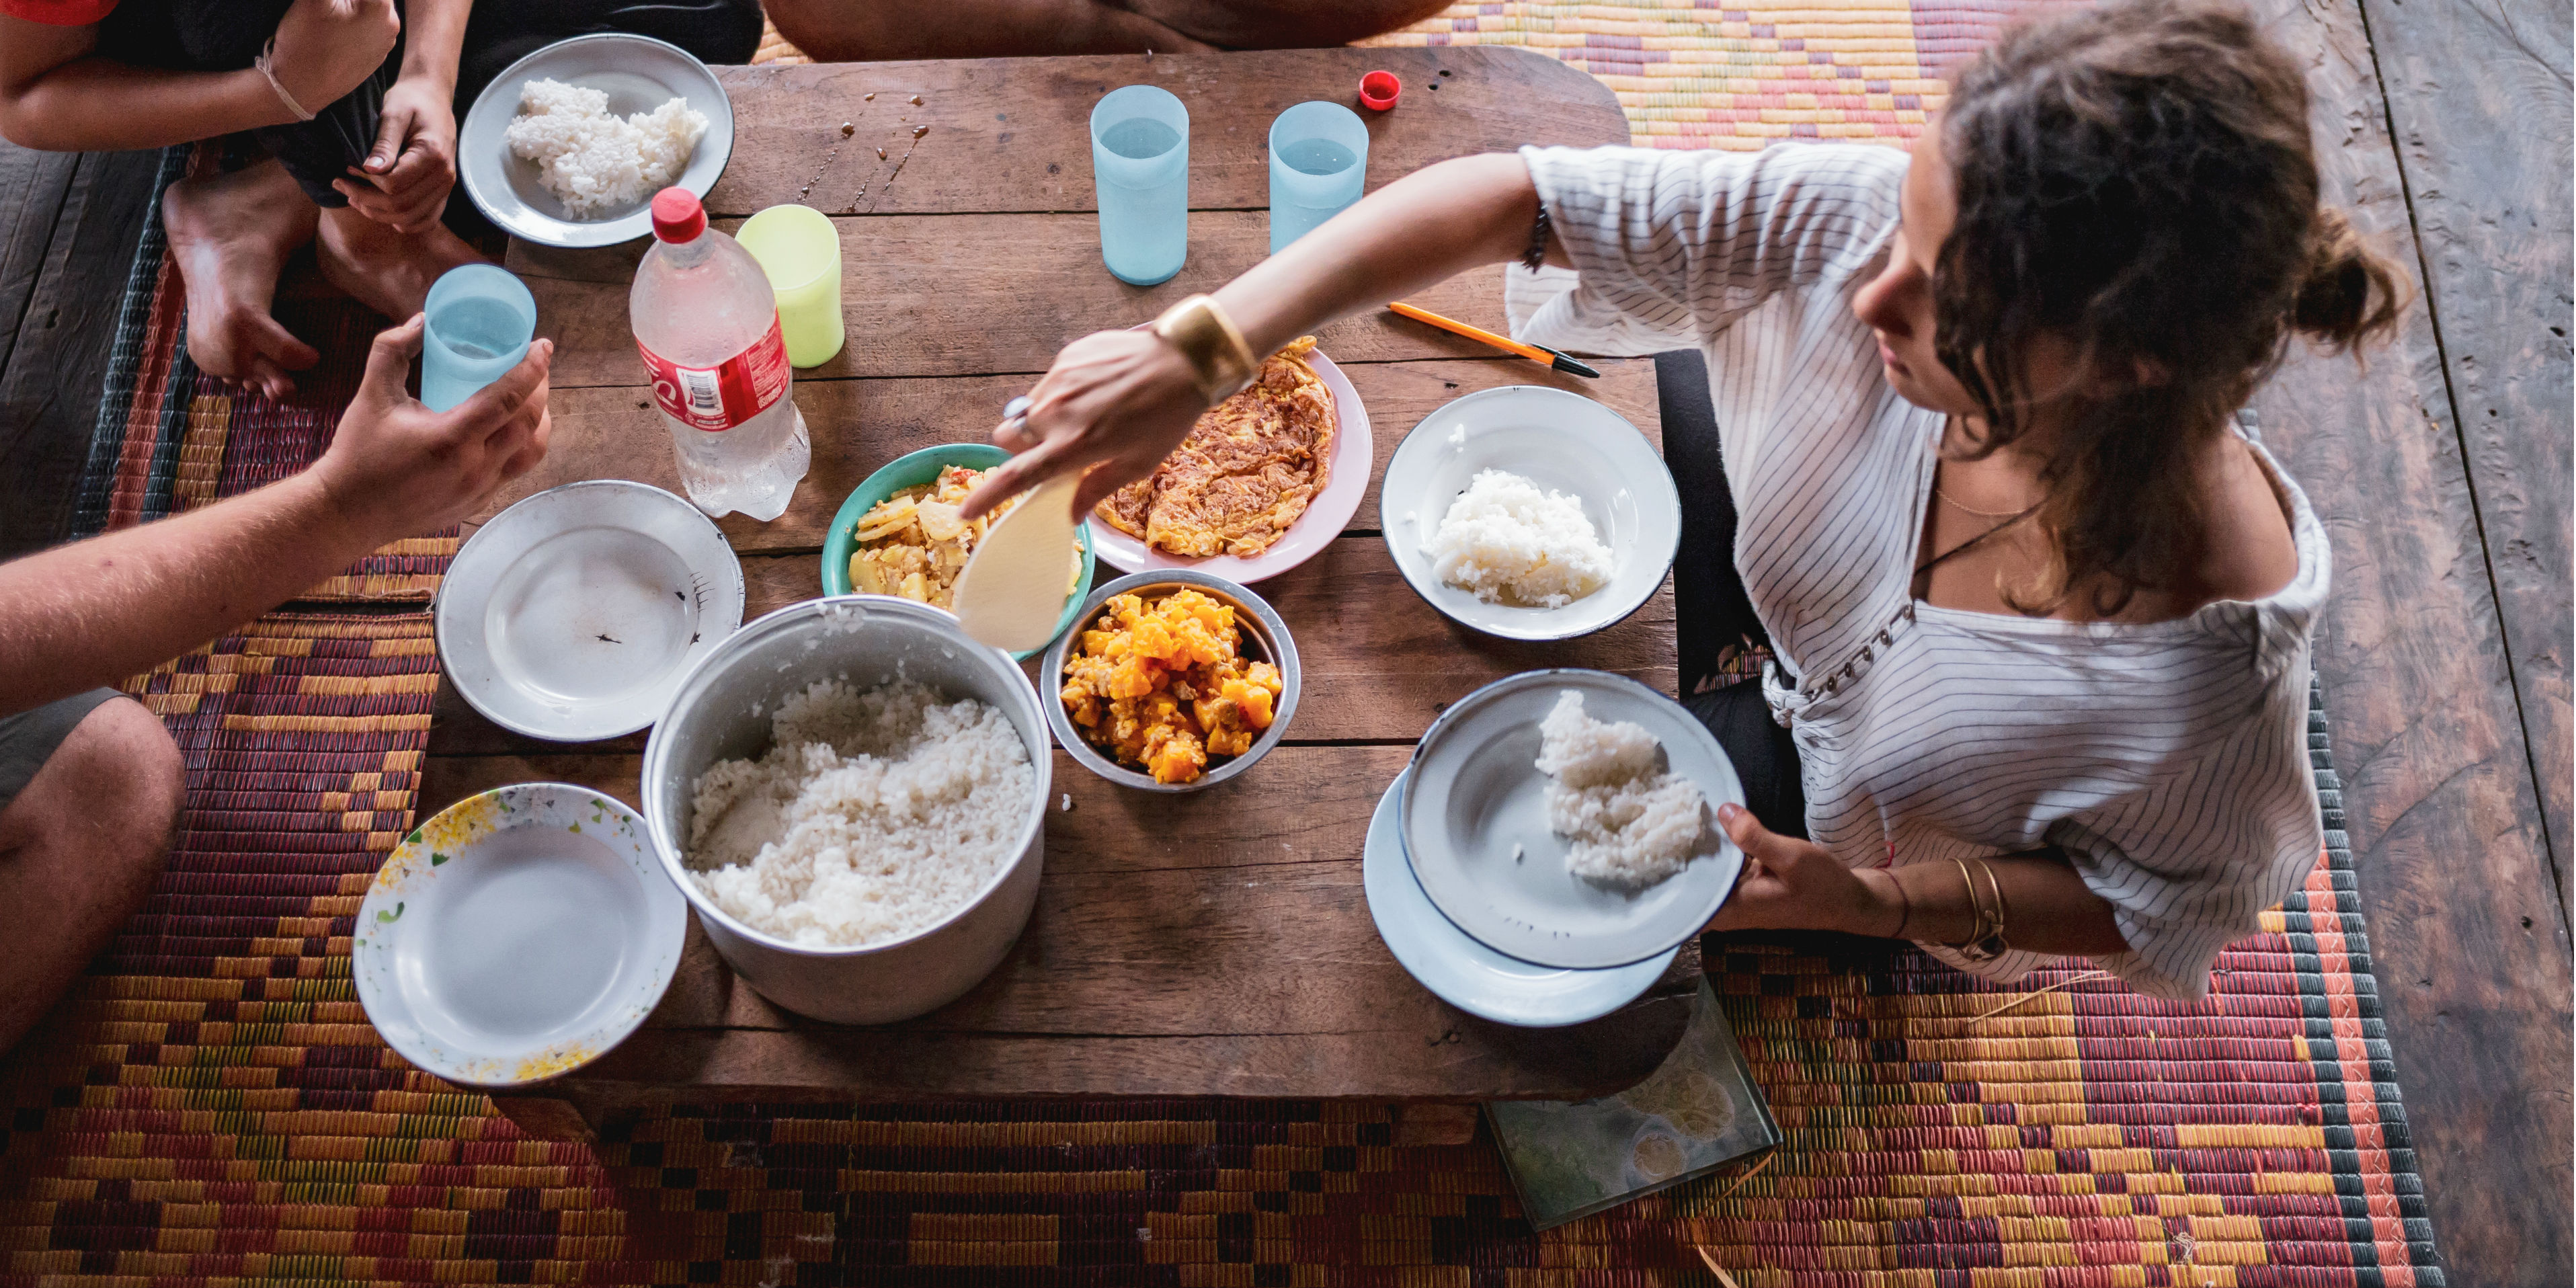 GVI participants in Chiang Mai enjoy a vegetarian meal together, in between their efforts volunteering with elephants.